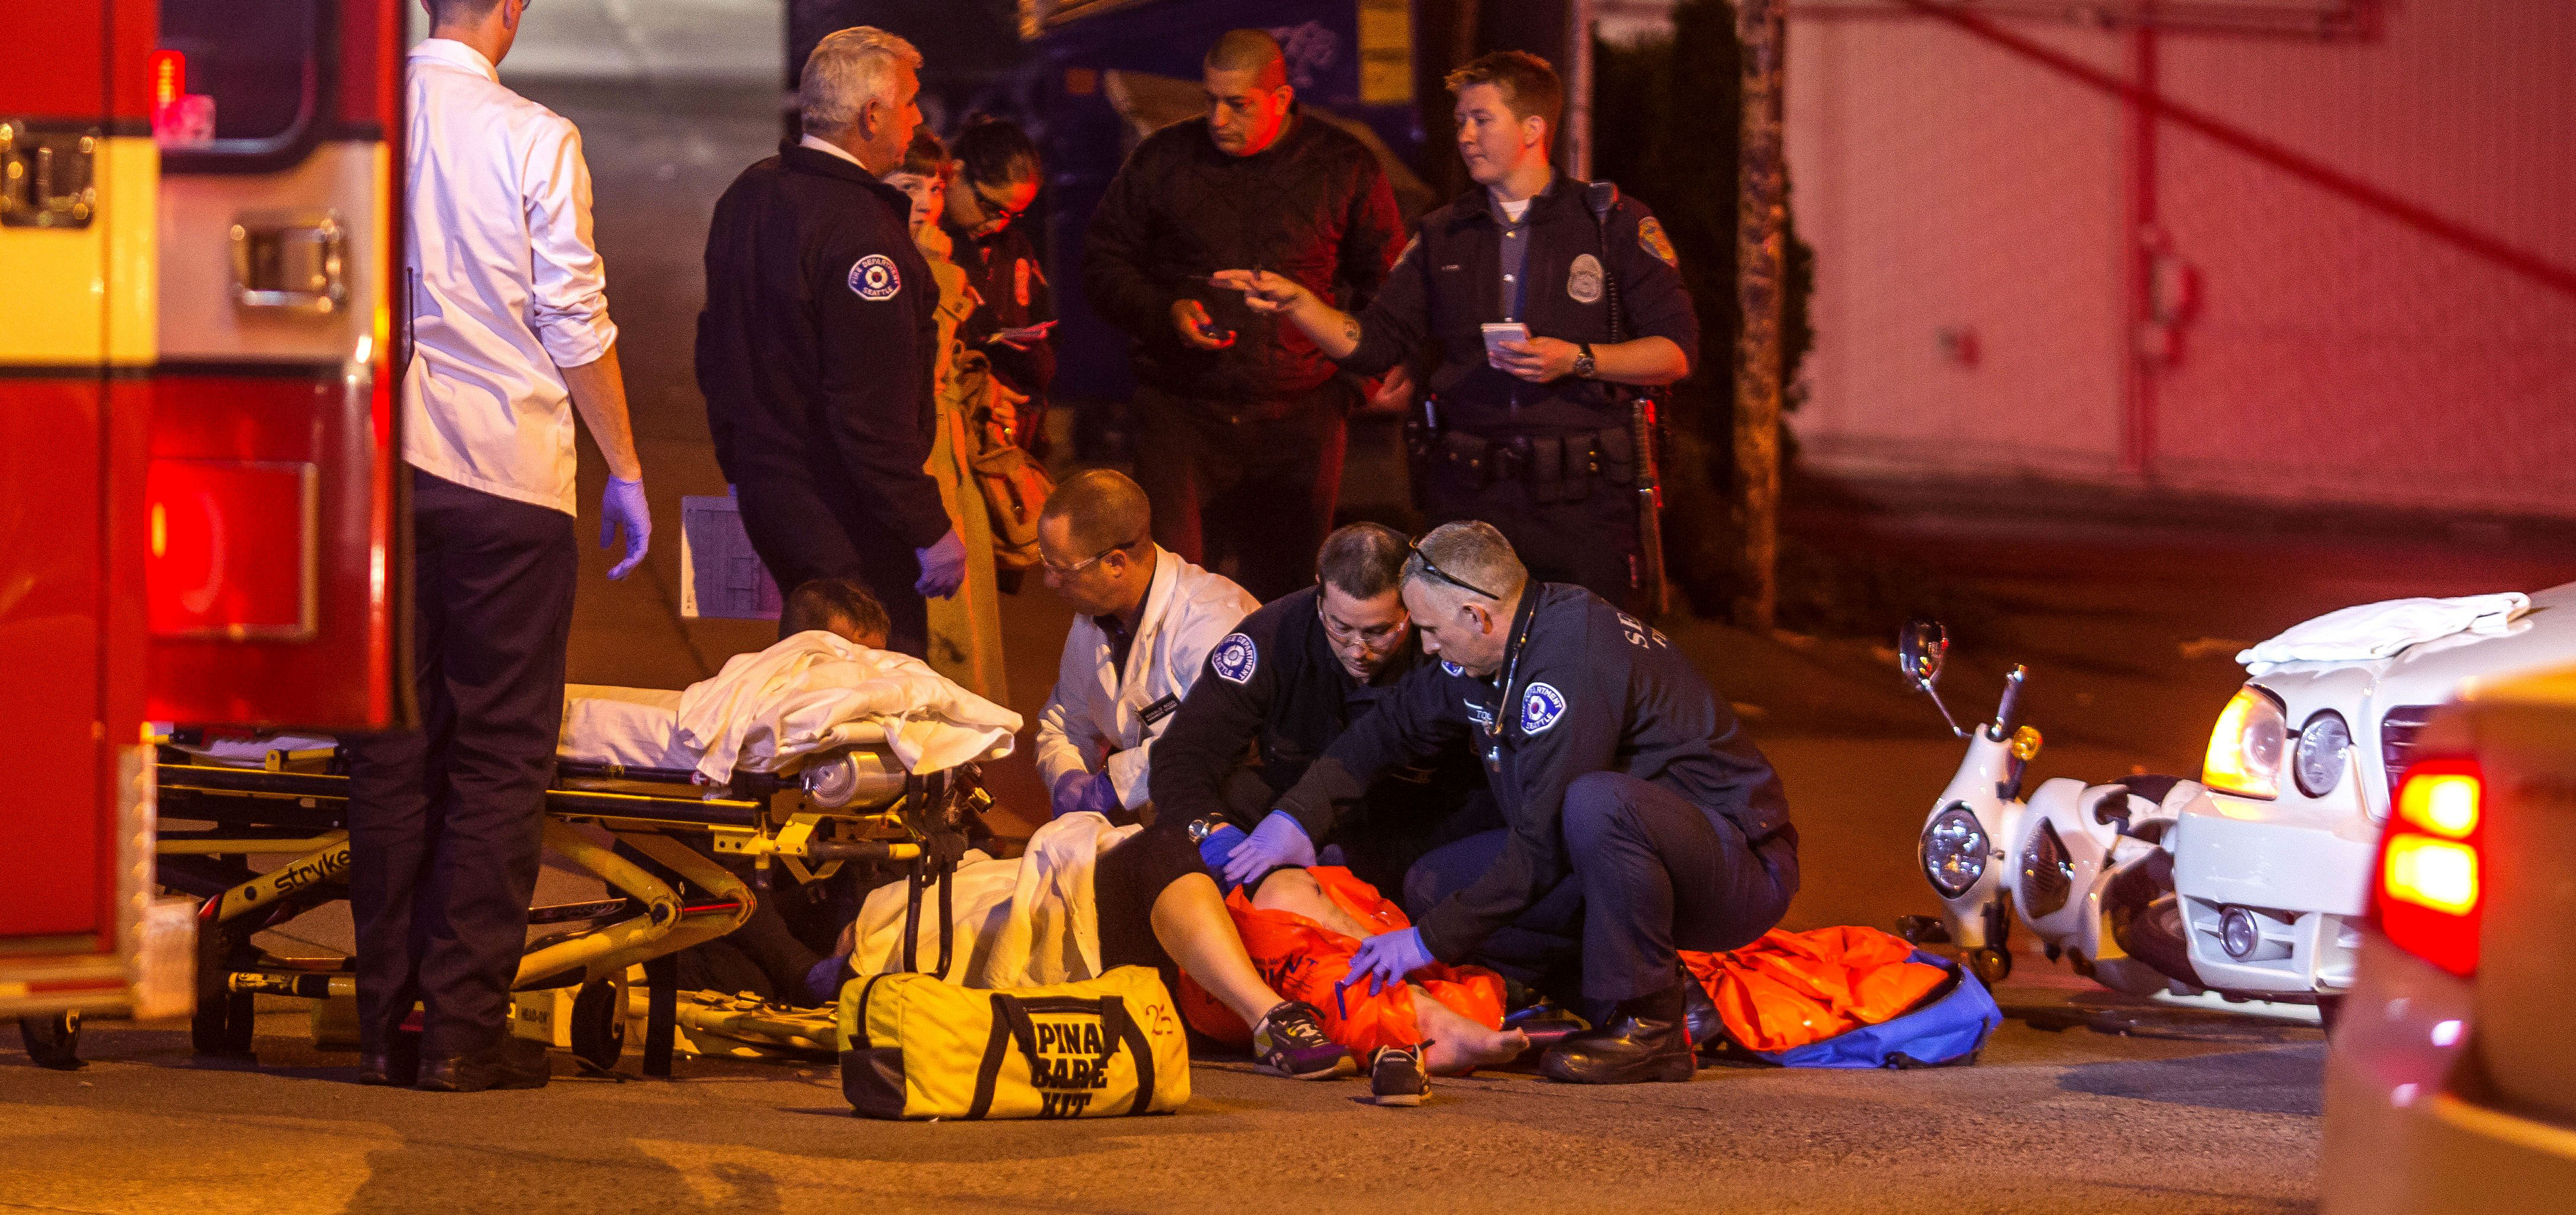 Paramedics tend to a woman who collided with a car while driving a scooter on East Olive Way Thursday night. The extent of her injuries were not immediately known. (Dean Rutz / The Seattle Times)